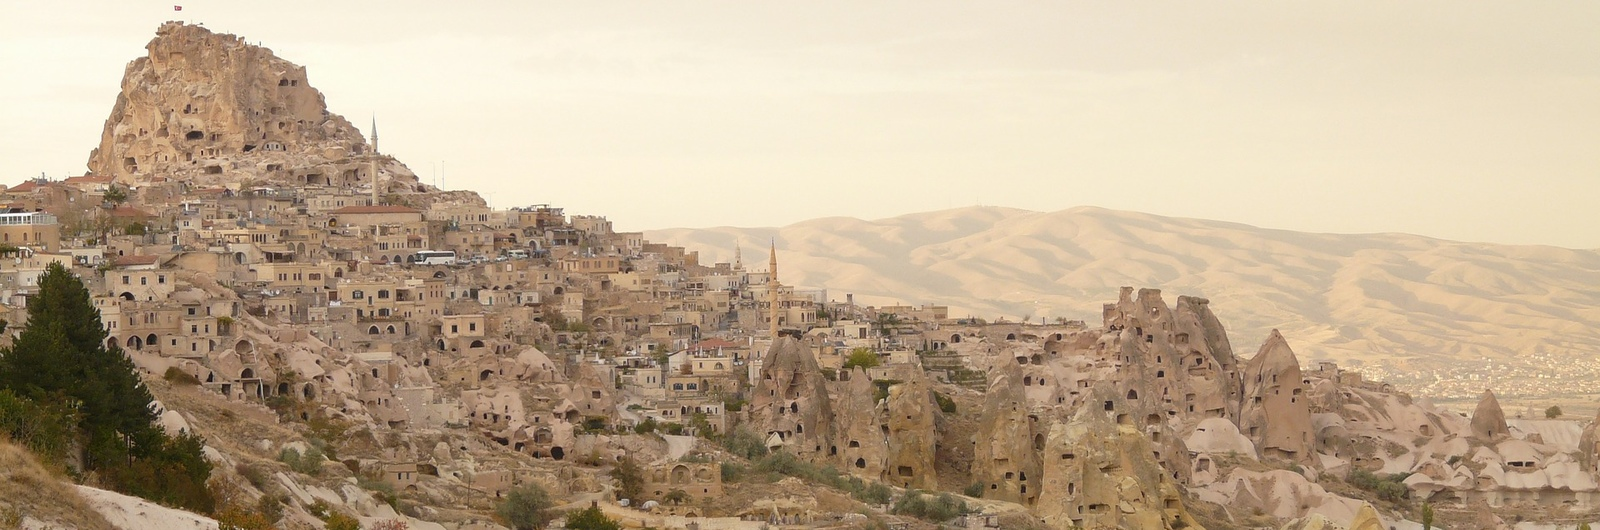 nevsehir city header